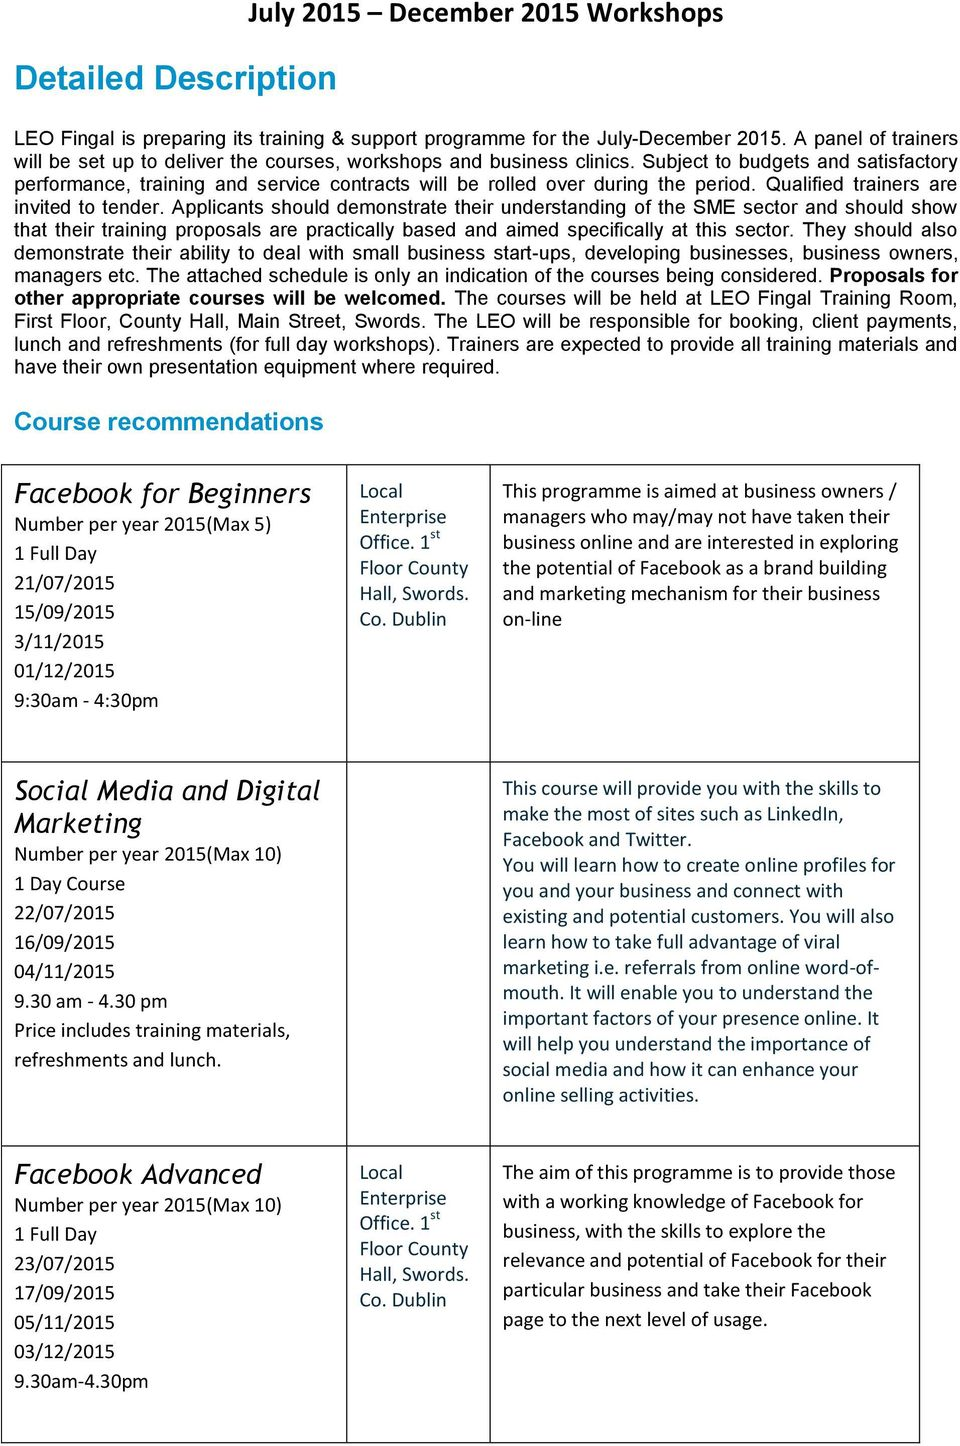 2015(Max 10) 1 Day Course 22/07/2015 16/09/2015 04/11/2015 9.30 am - 4.30 pm This course will provide you with the skills to make the most of sites such as LinkedIn, Facebook and Twitter.